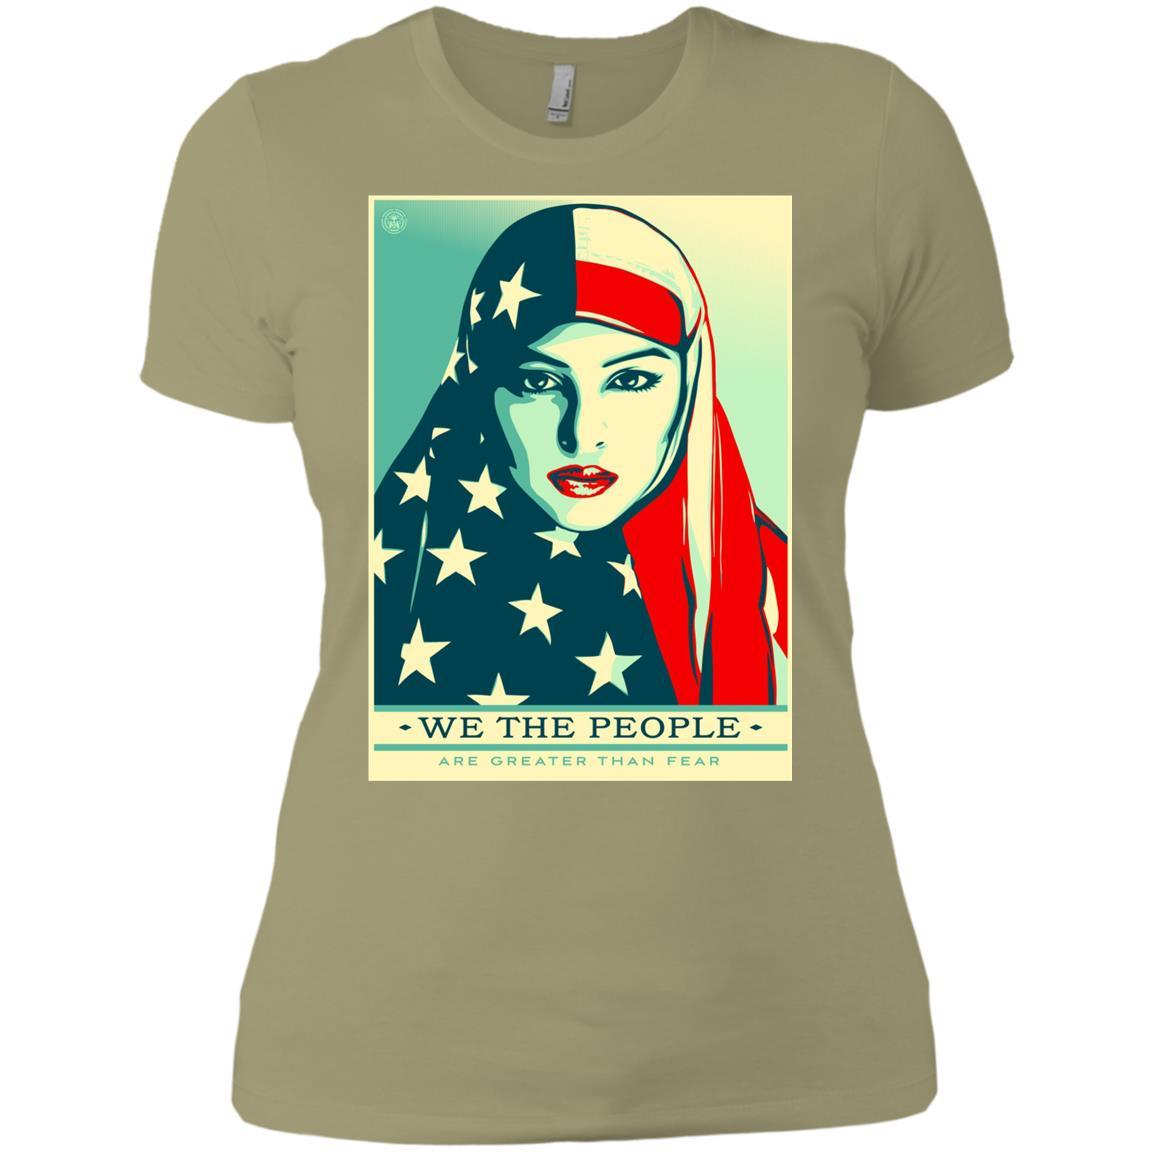 we the people are greater than fear - Ladies' Boyfriend T-Shirt Style / Color / Size